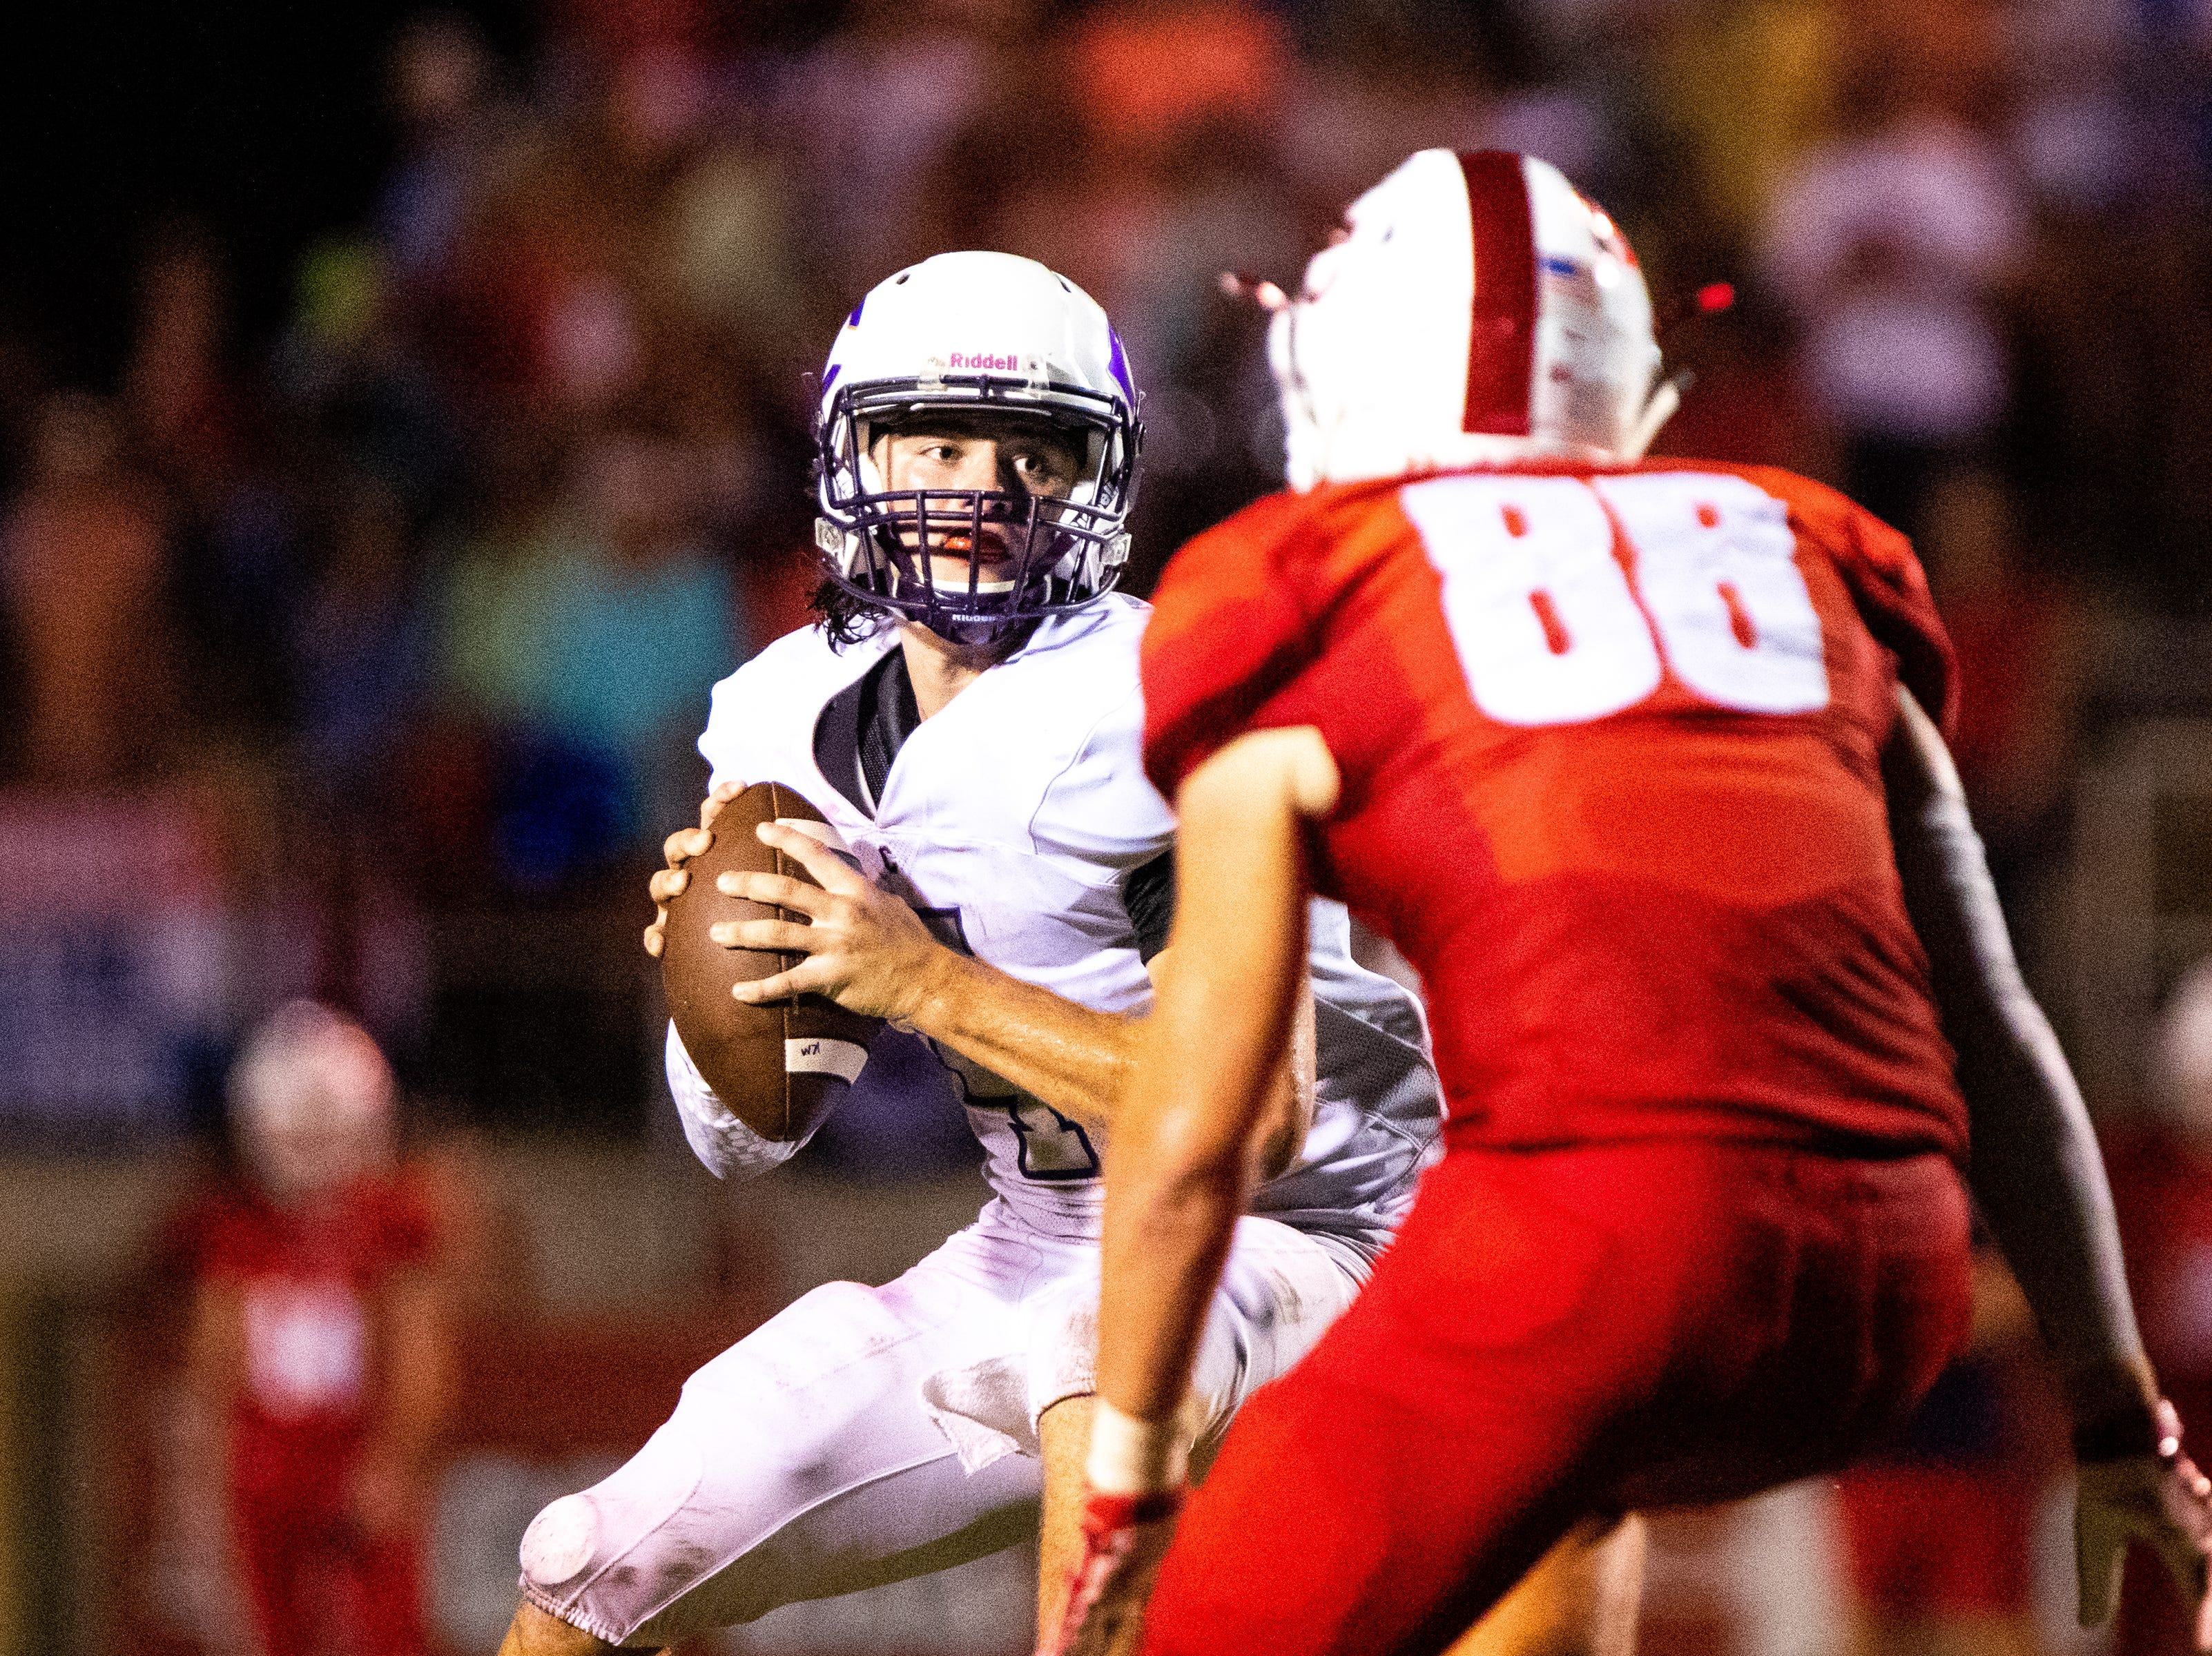 Ford Cooper (4) of Clarksville High looks to throw the ball during the first half at Henry County Friday, Sept. 14, 2018, in Paris, Tenn.